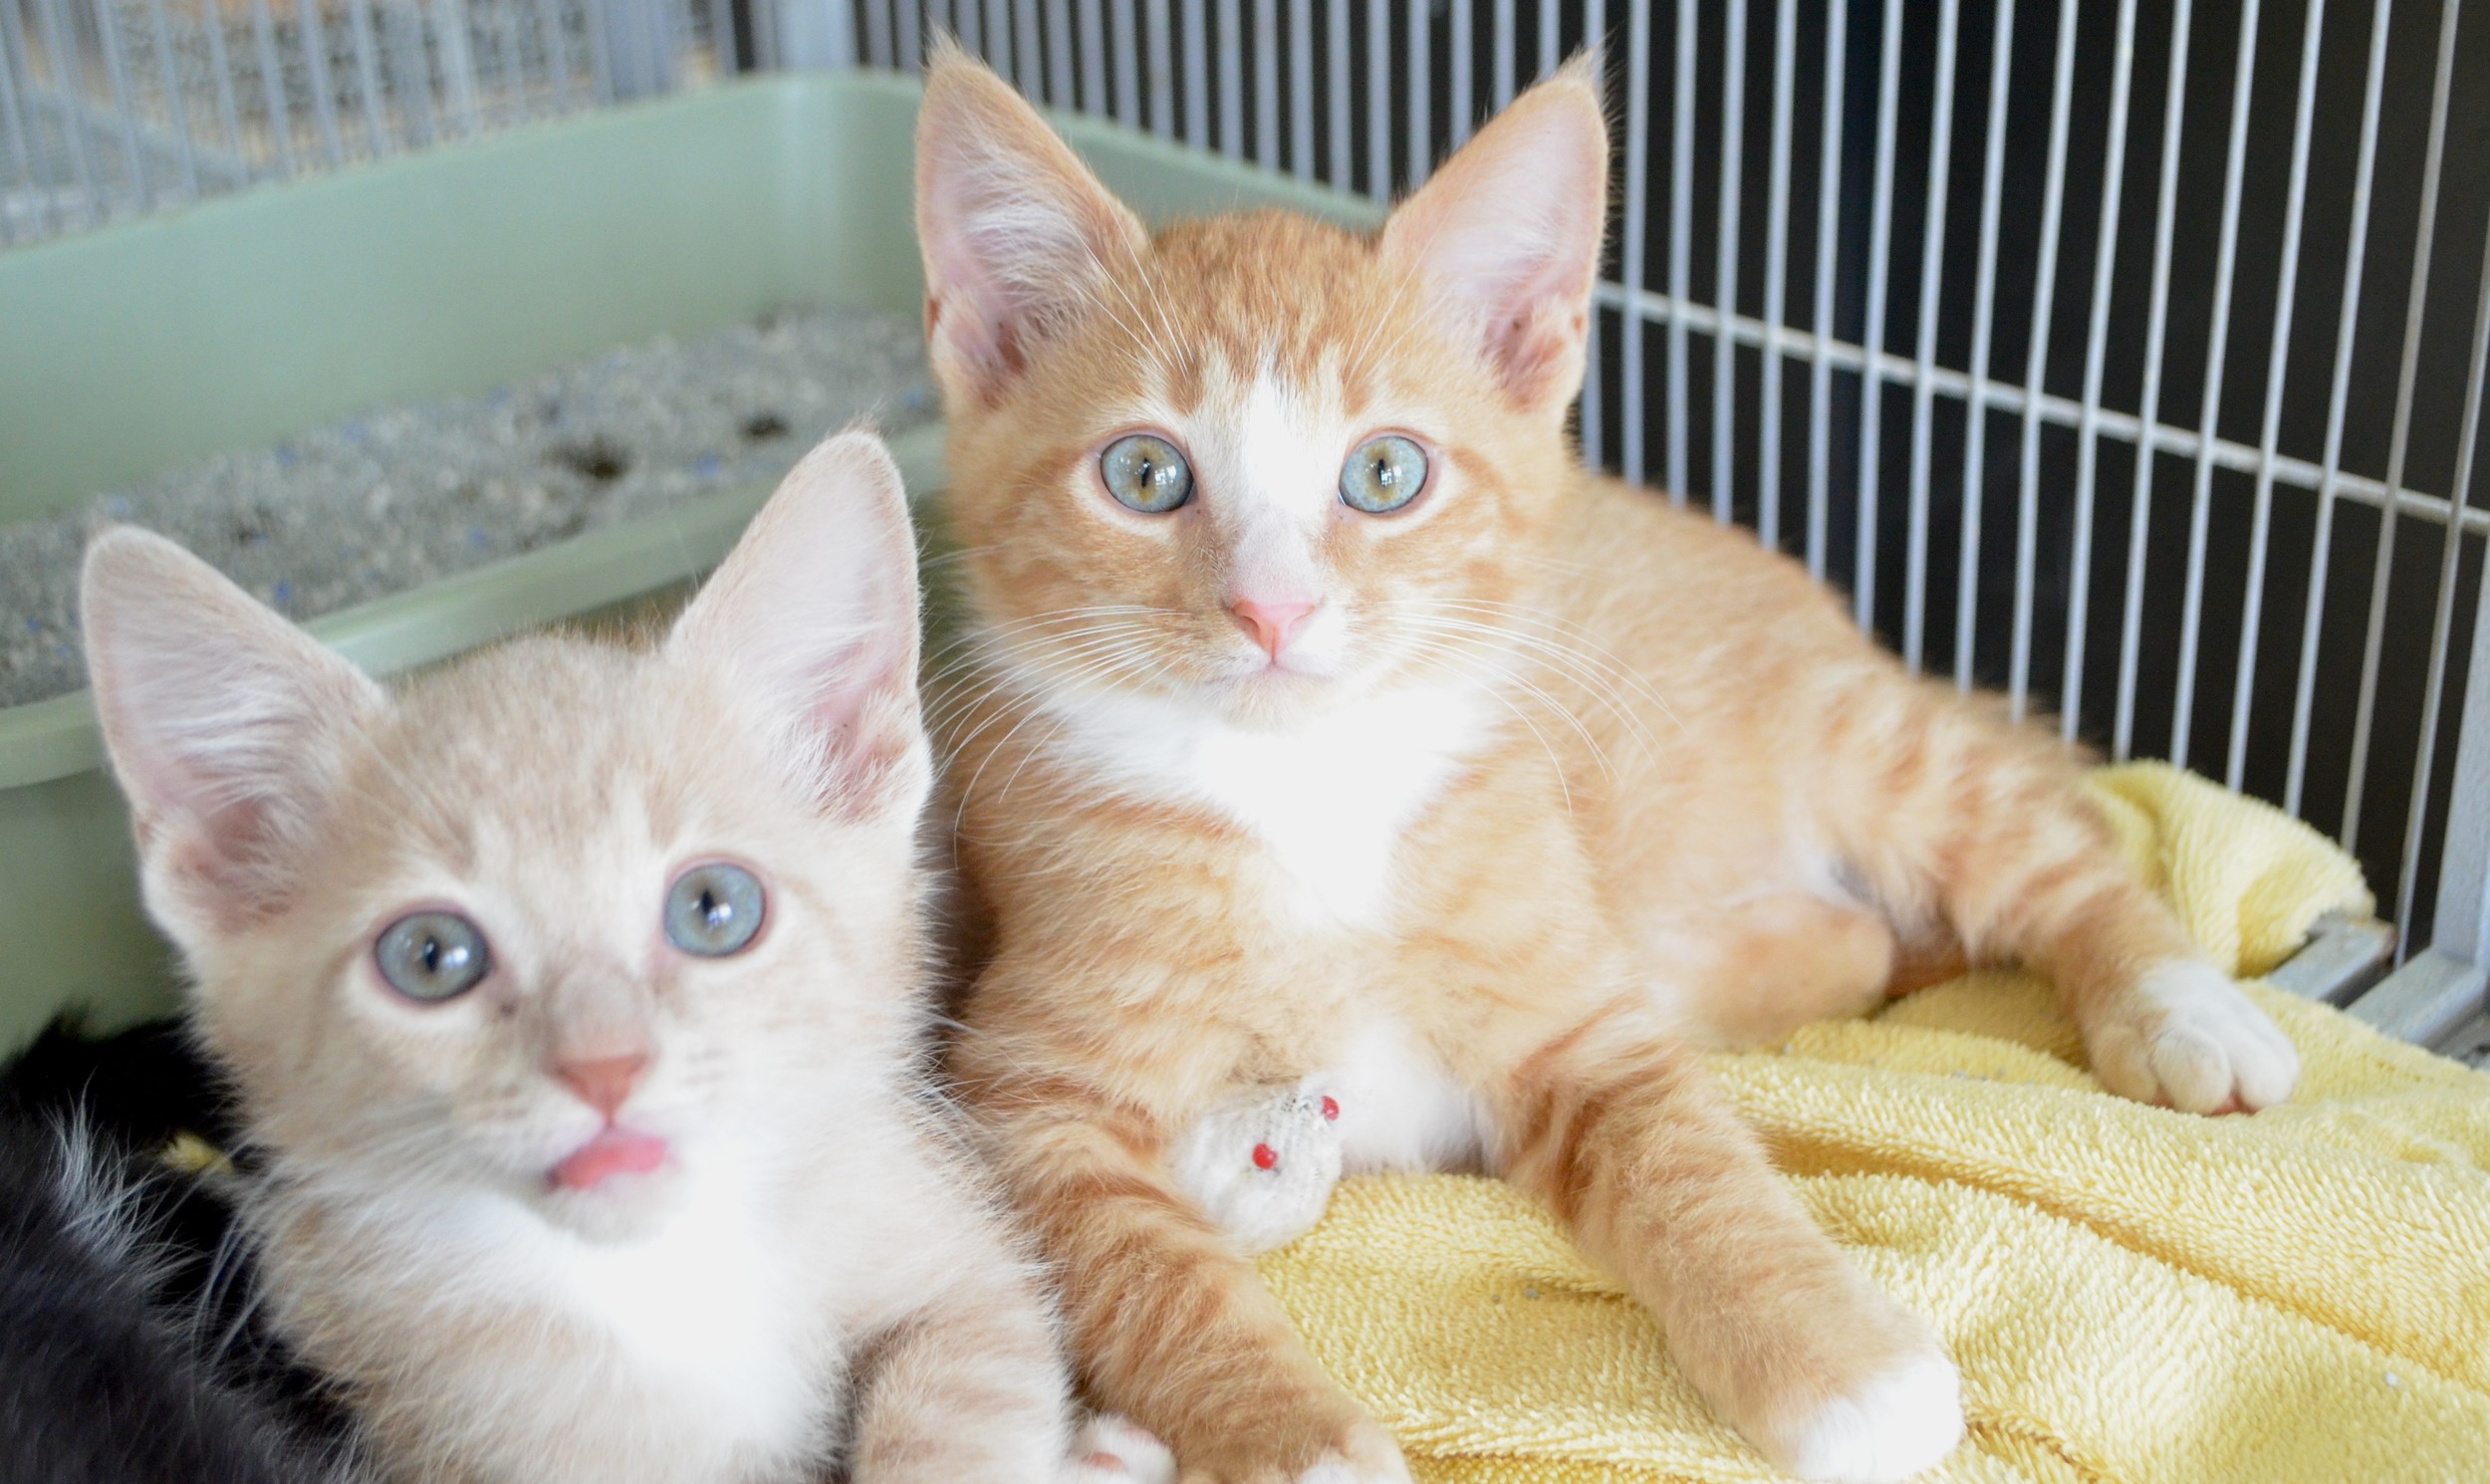 Two kittens available for adoption at Pet Depot in Jasper.